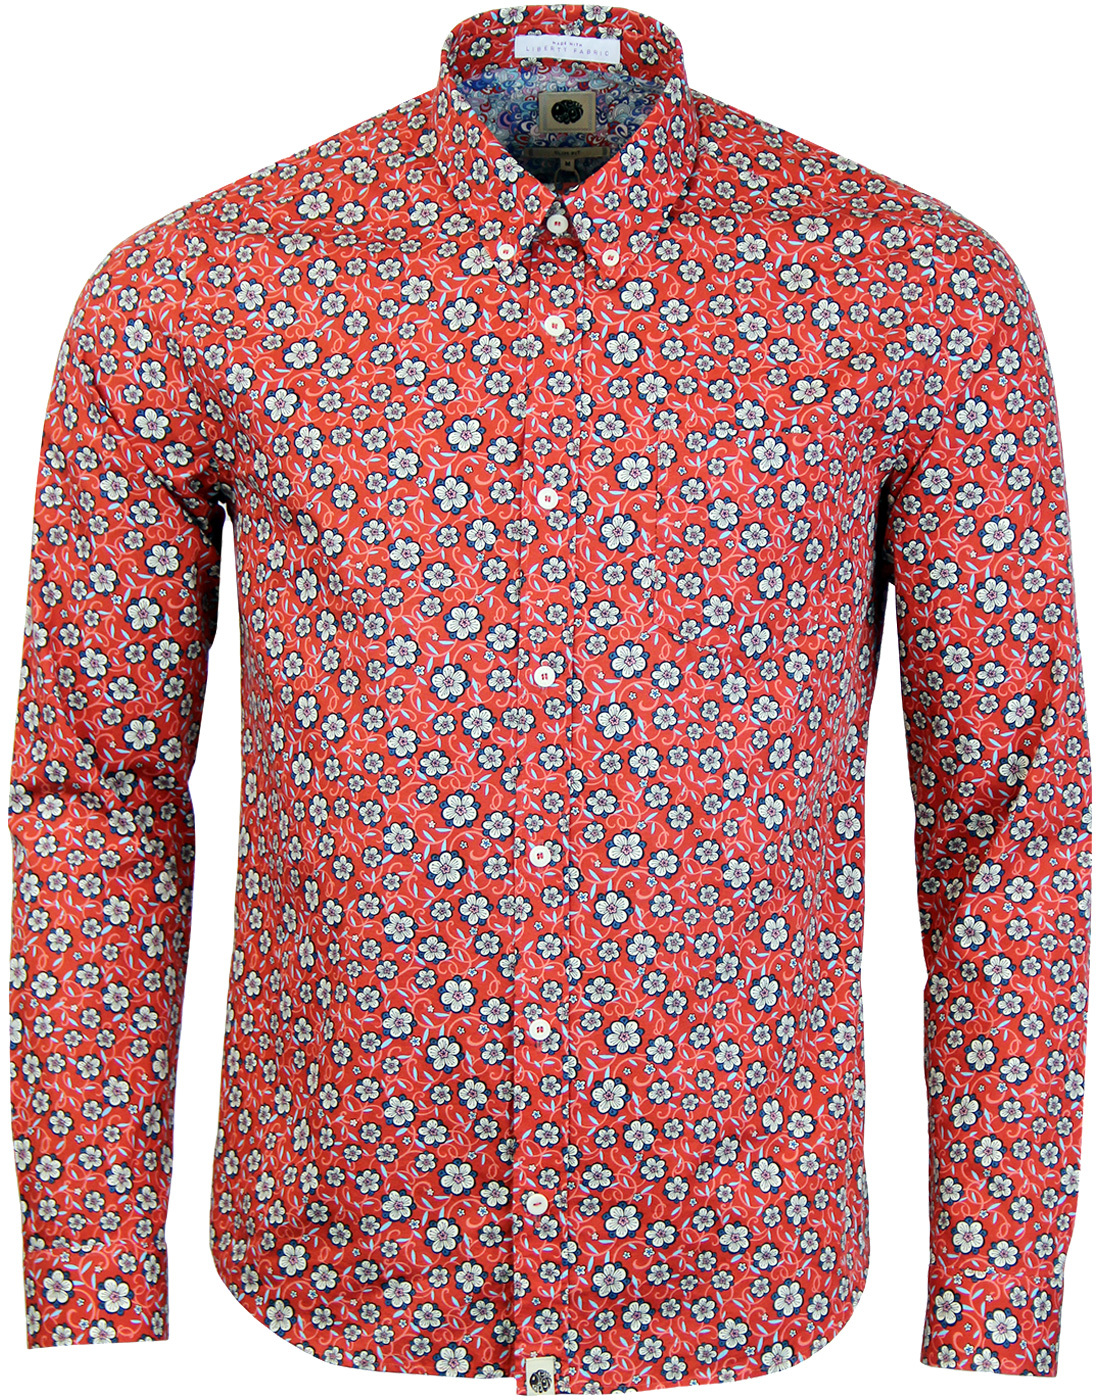 Wynne PRETTY GREEN Liberty Fabric 60s Floral Shirt